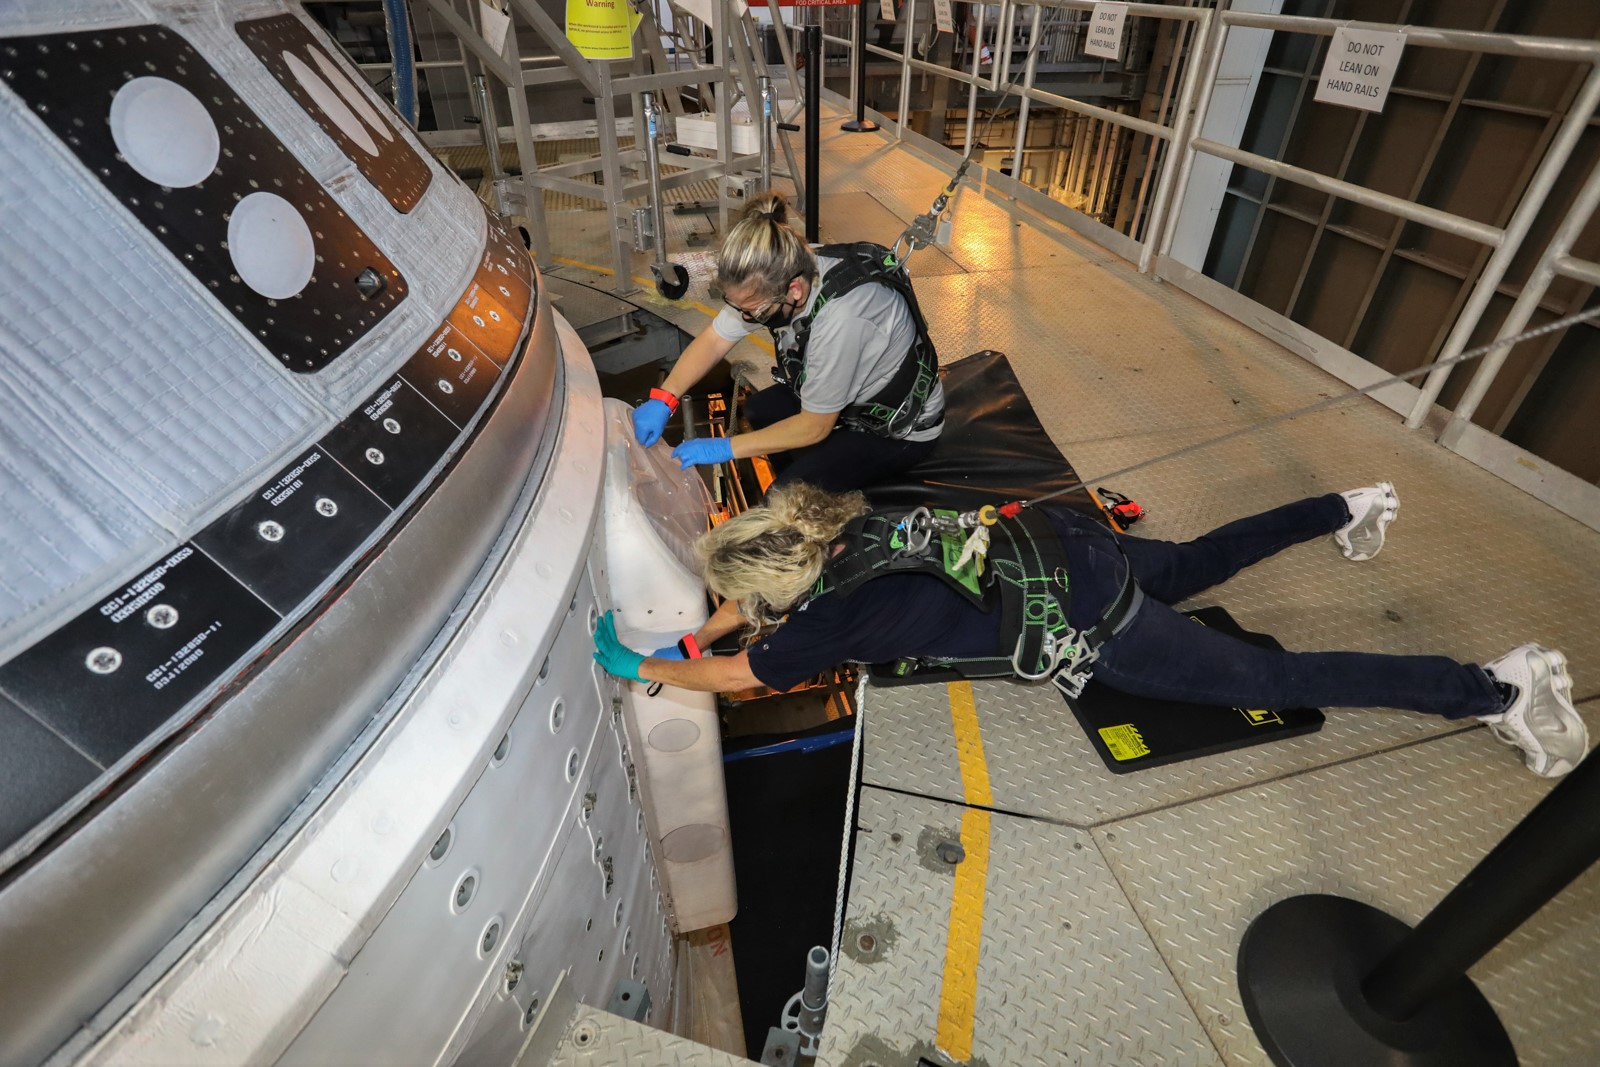 Boeing engineers continue work at the United Launch Alliance Vertical Integration Facility on the Starliner propulsion system valves.